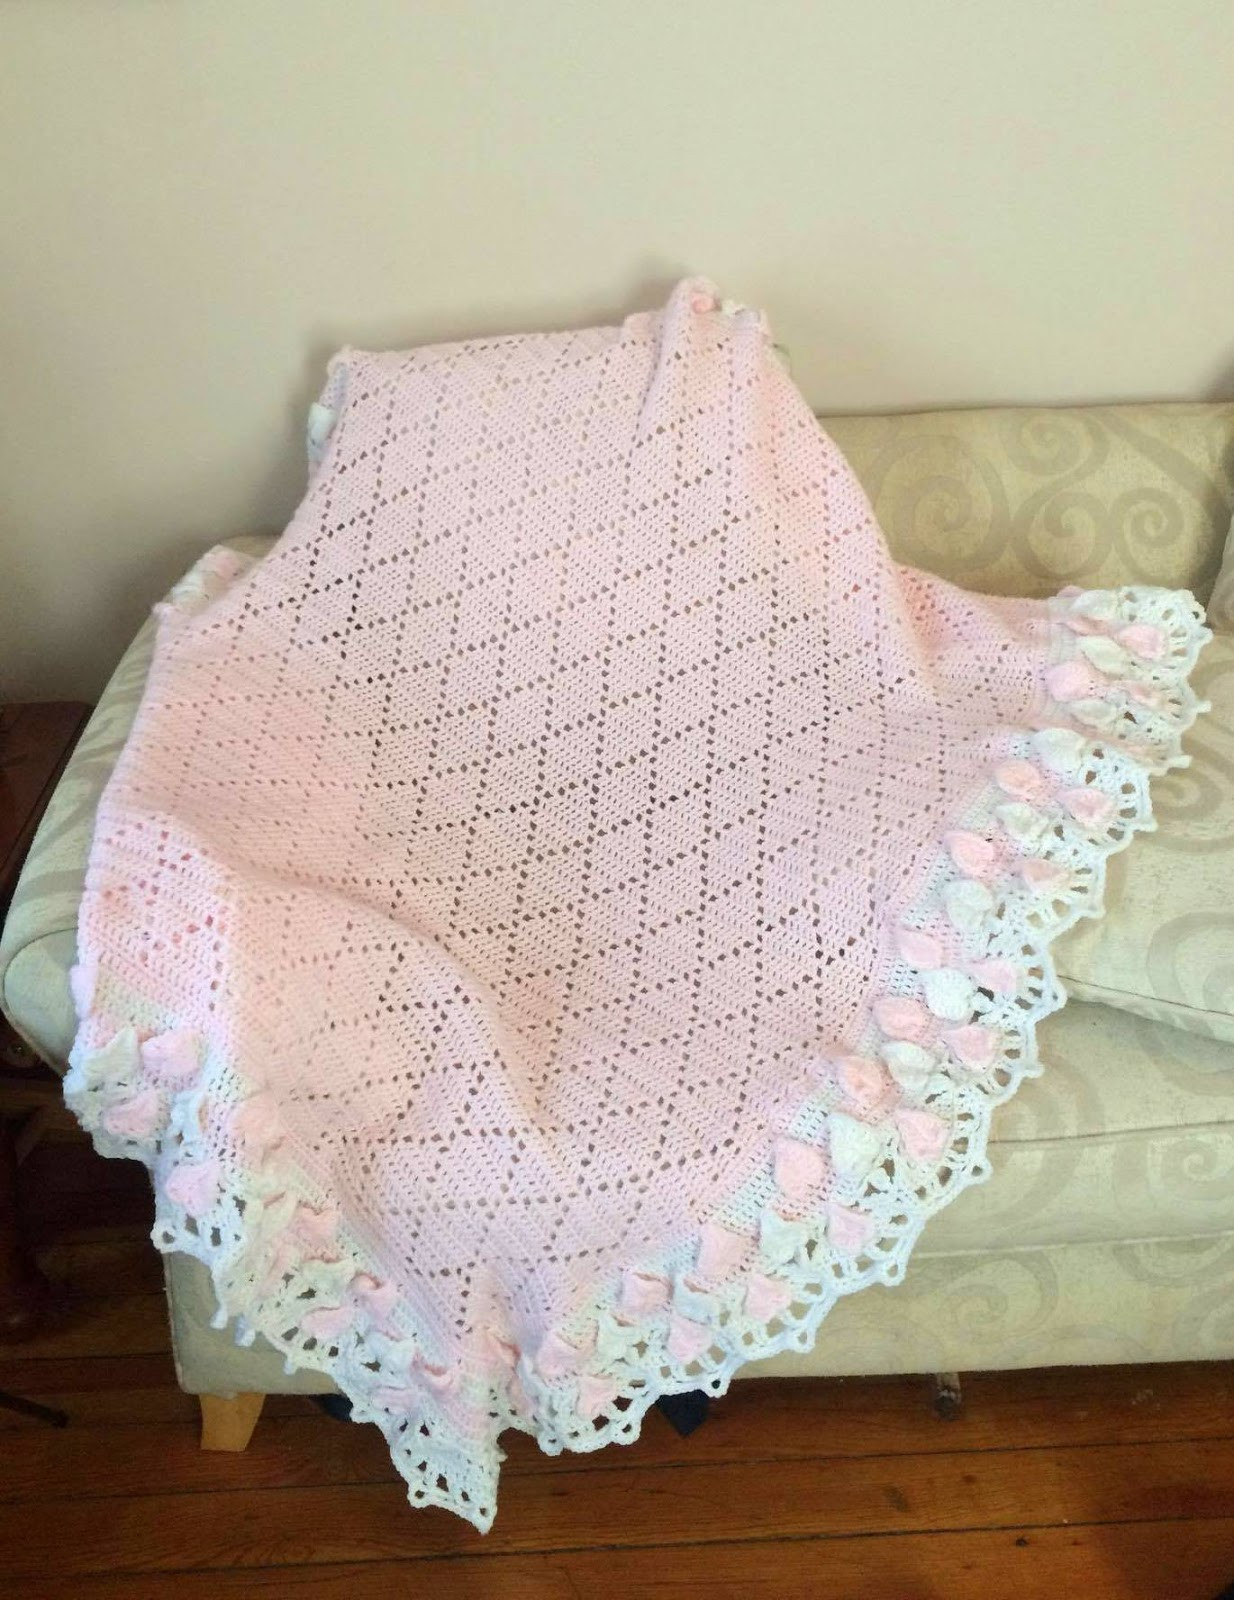 Lacy Crochet Diamond Baby Blanket with Hearts and Shells